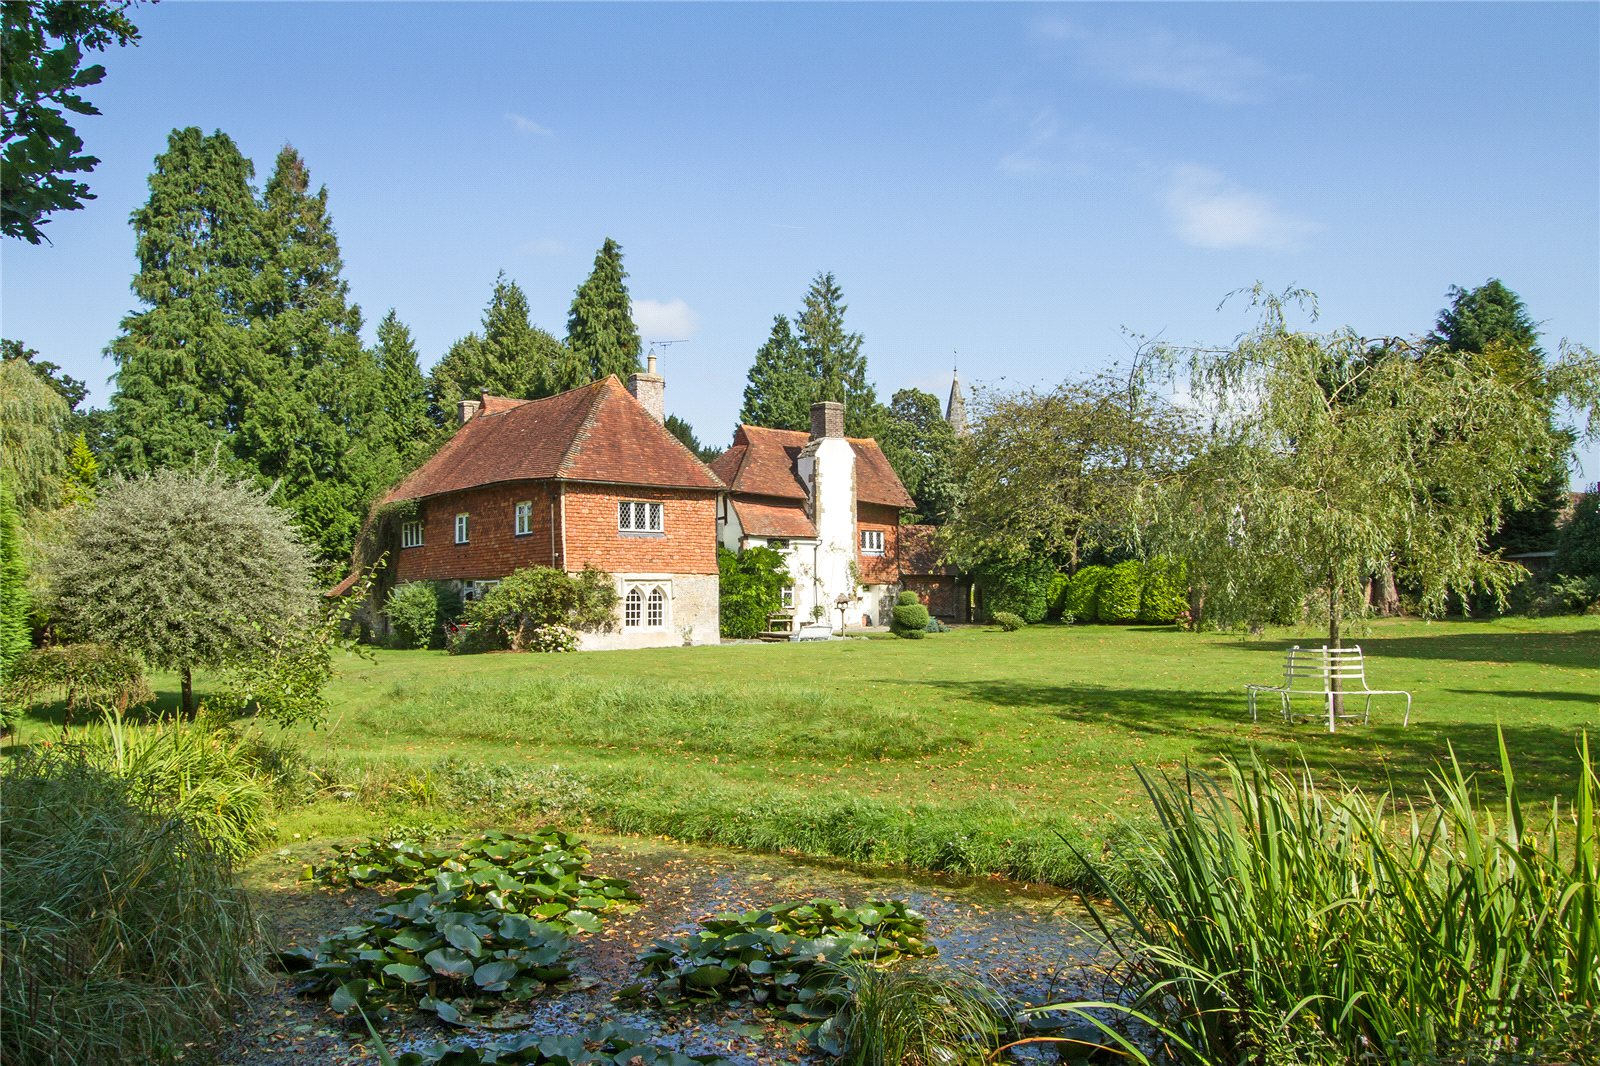 Single Family Home For Sale At Church Road Bramshott Liphook Hampshire GU30